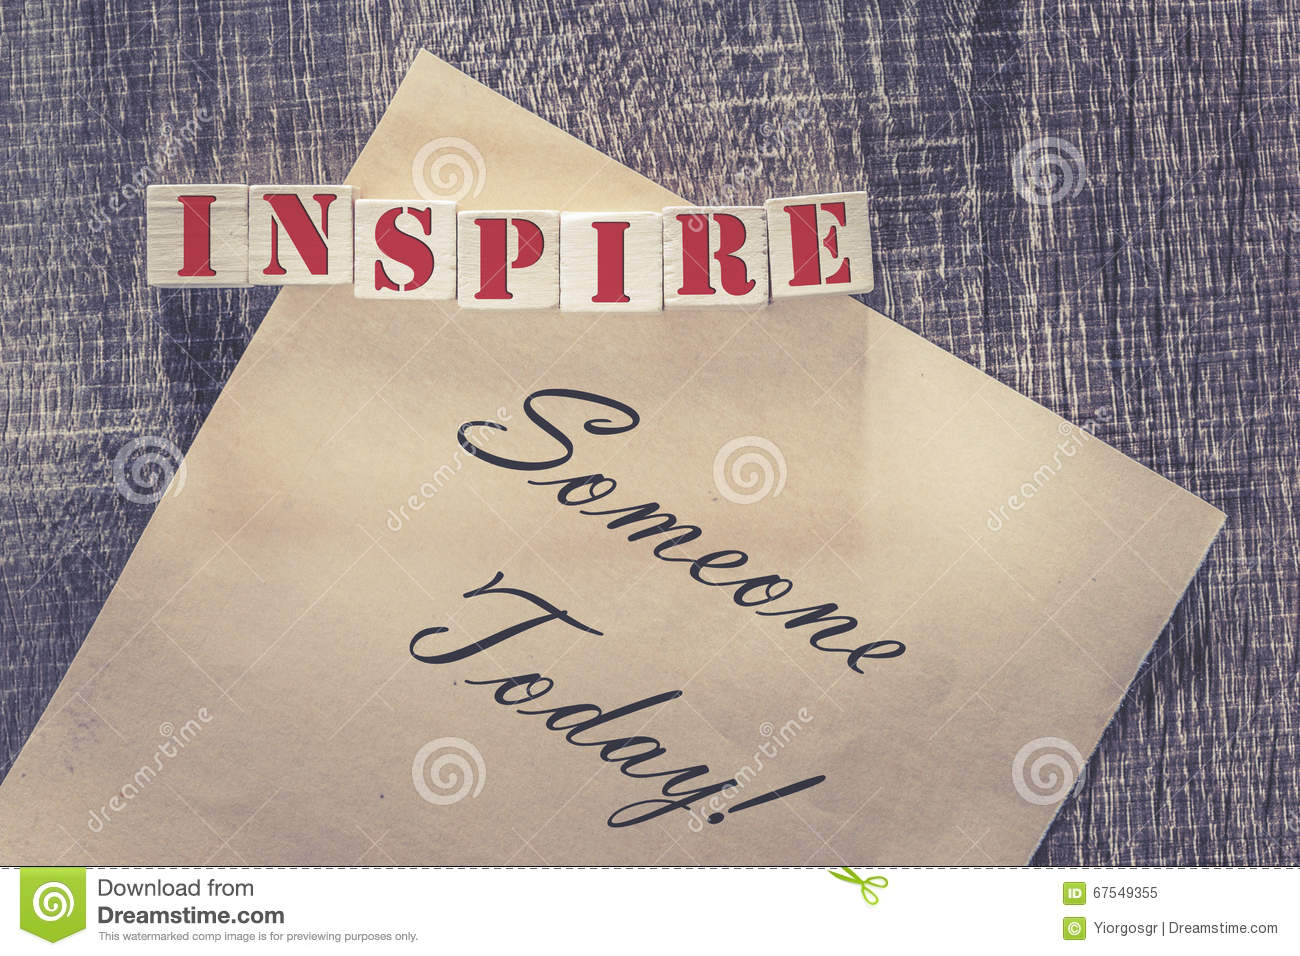 Inspire someone today quote